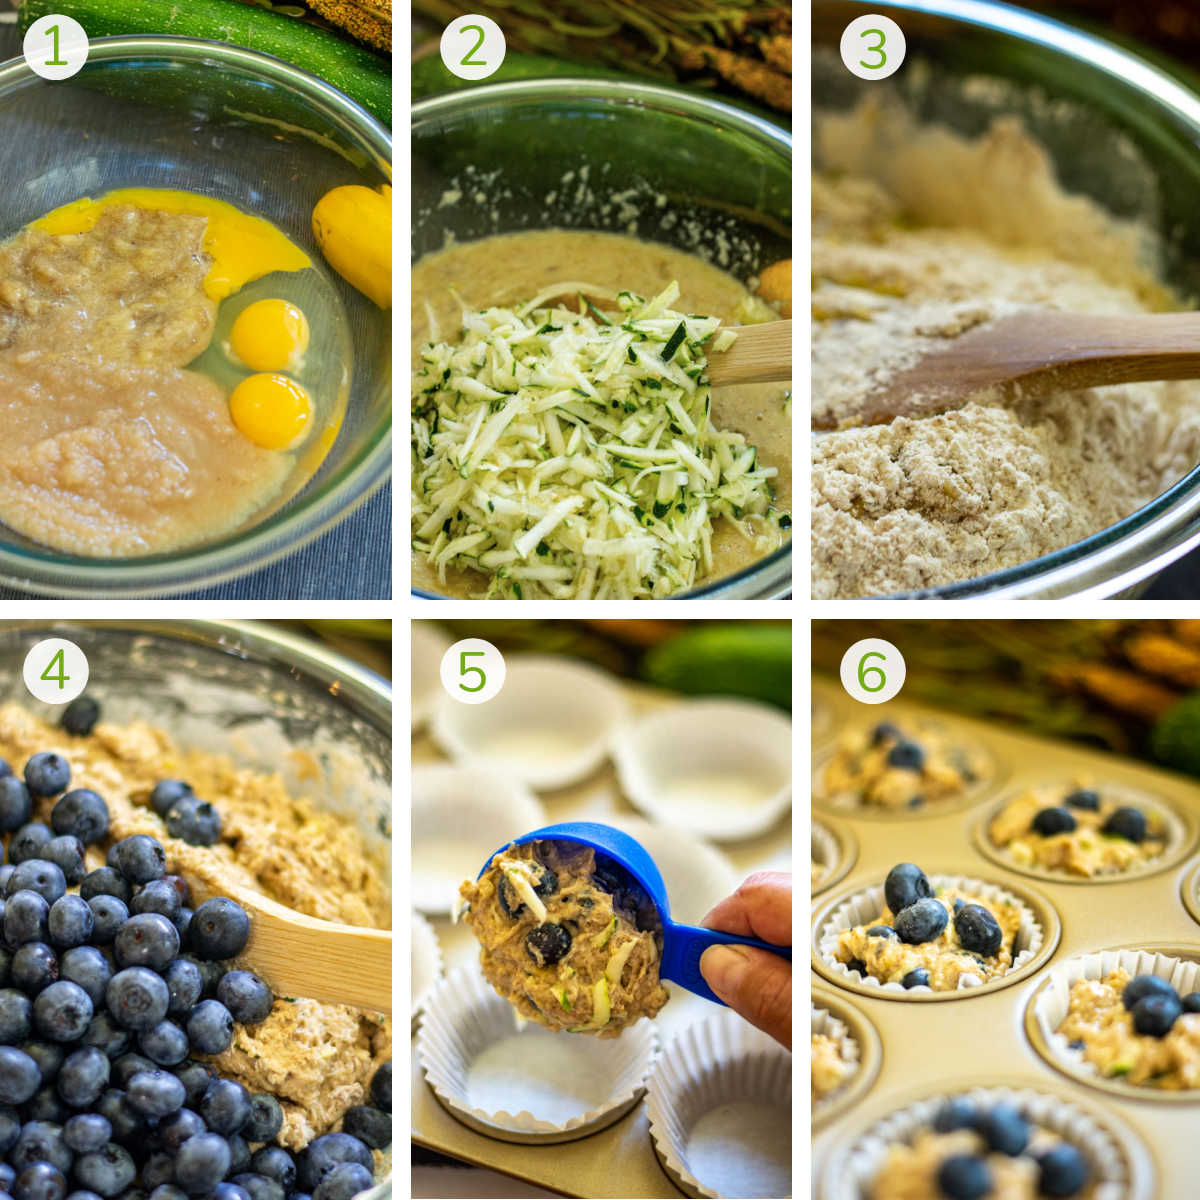 several process photos showing mixing the batter, adding the zucchini, blueberries and putting them in muffin tins to bake.